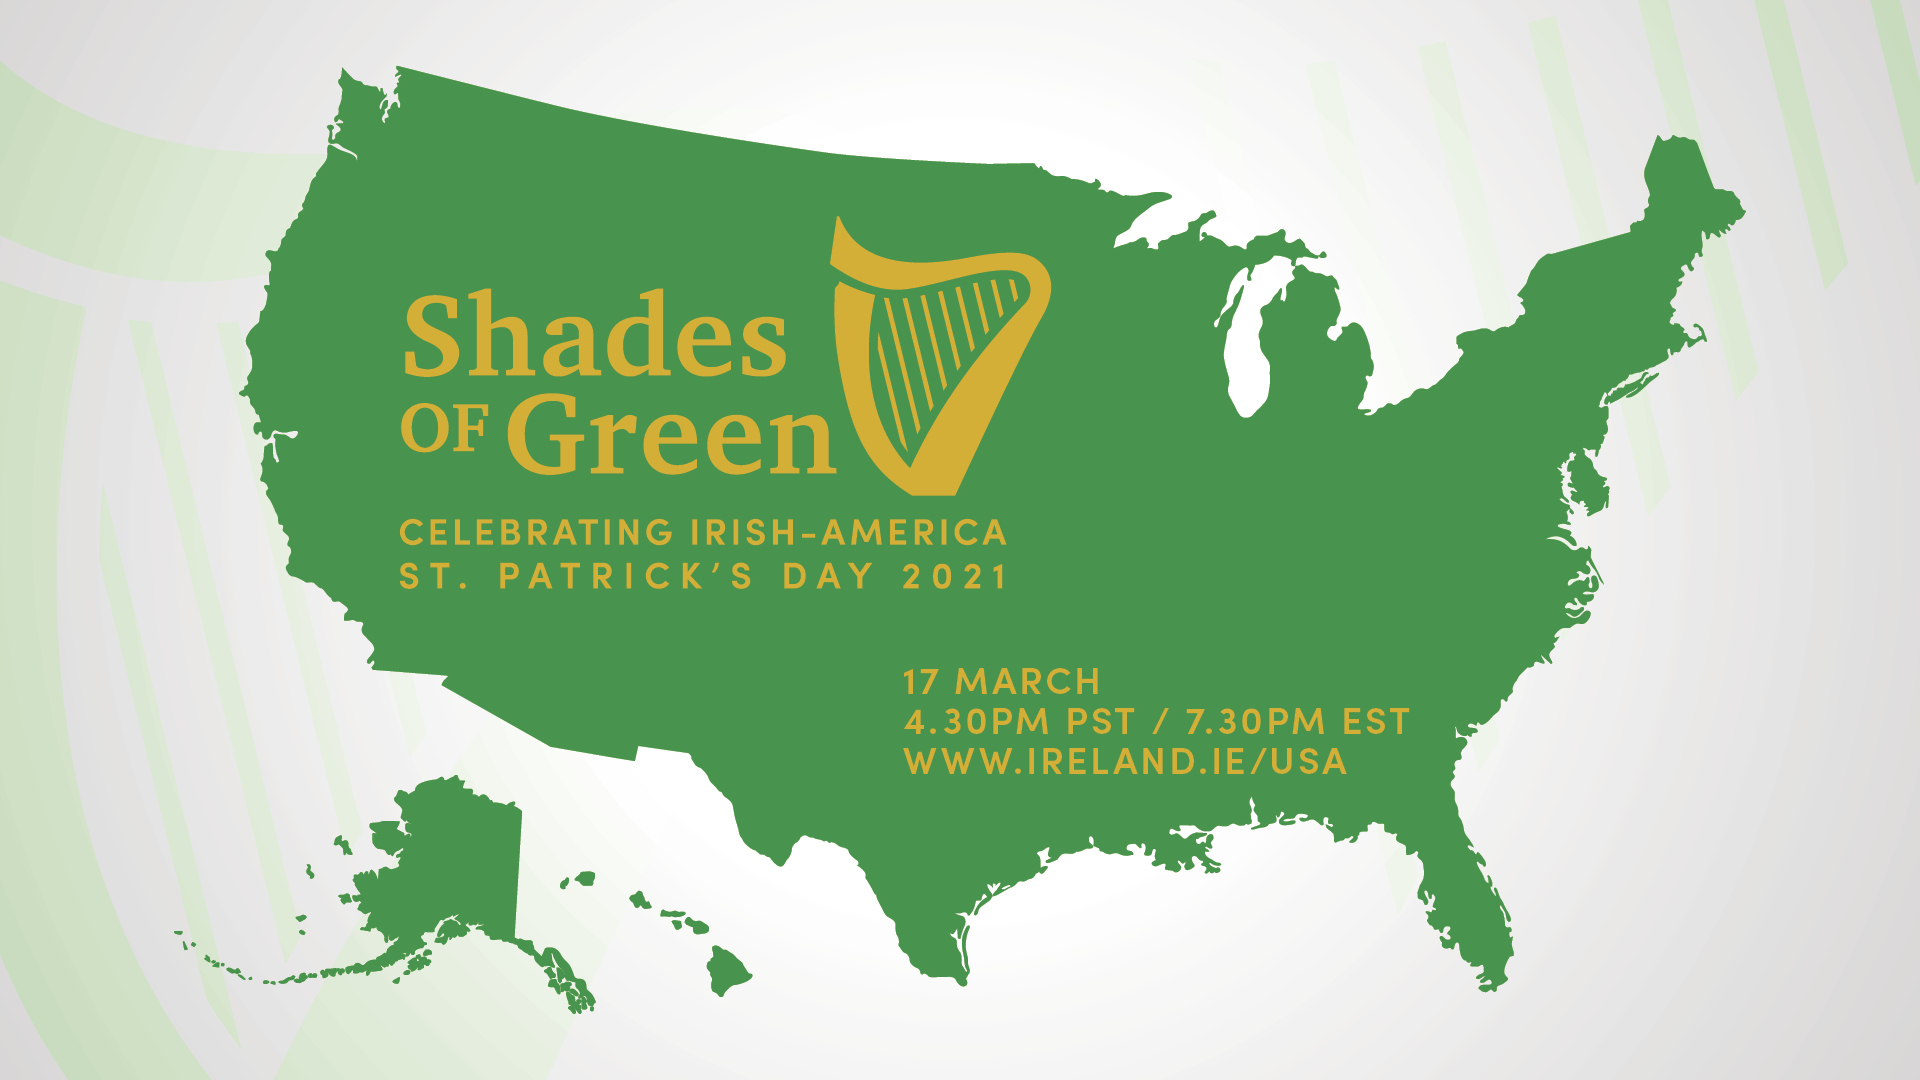 Announcing 'Shades of Green' – Celebrating Irish-America on St Patrick's Day